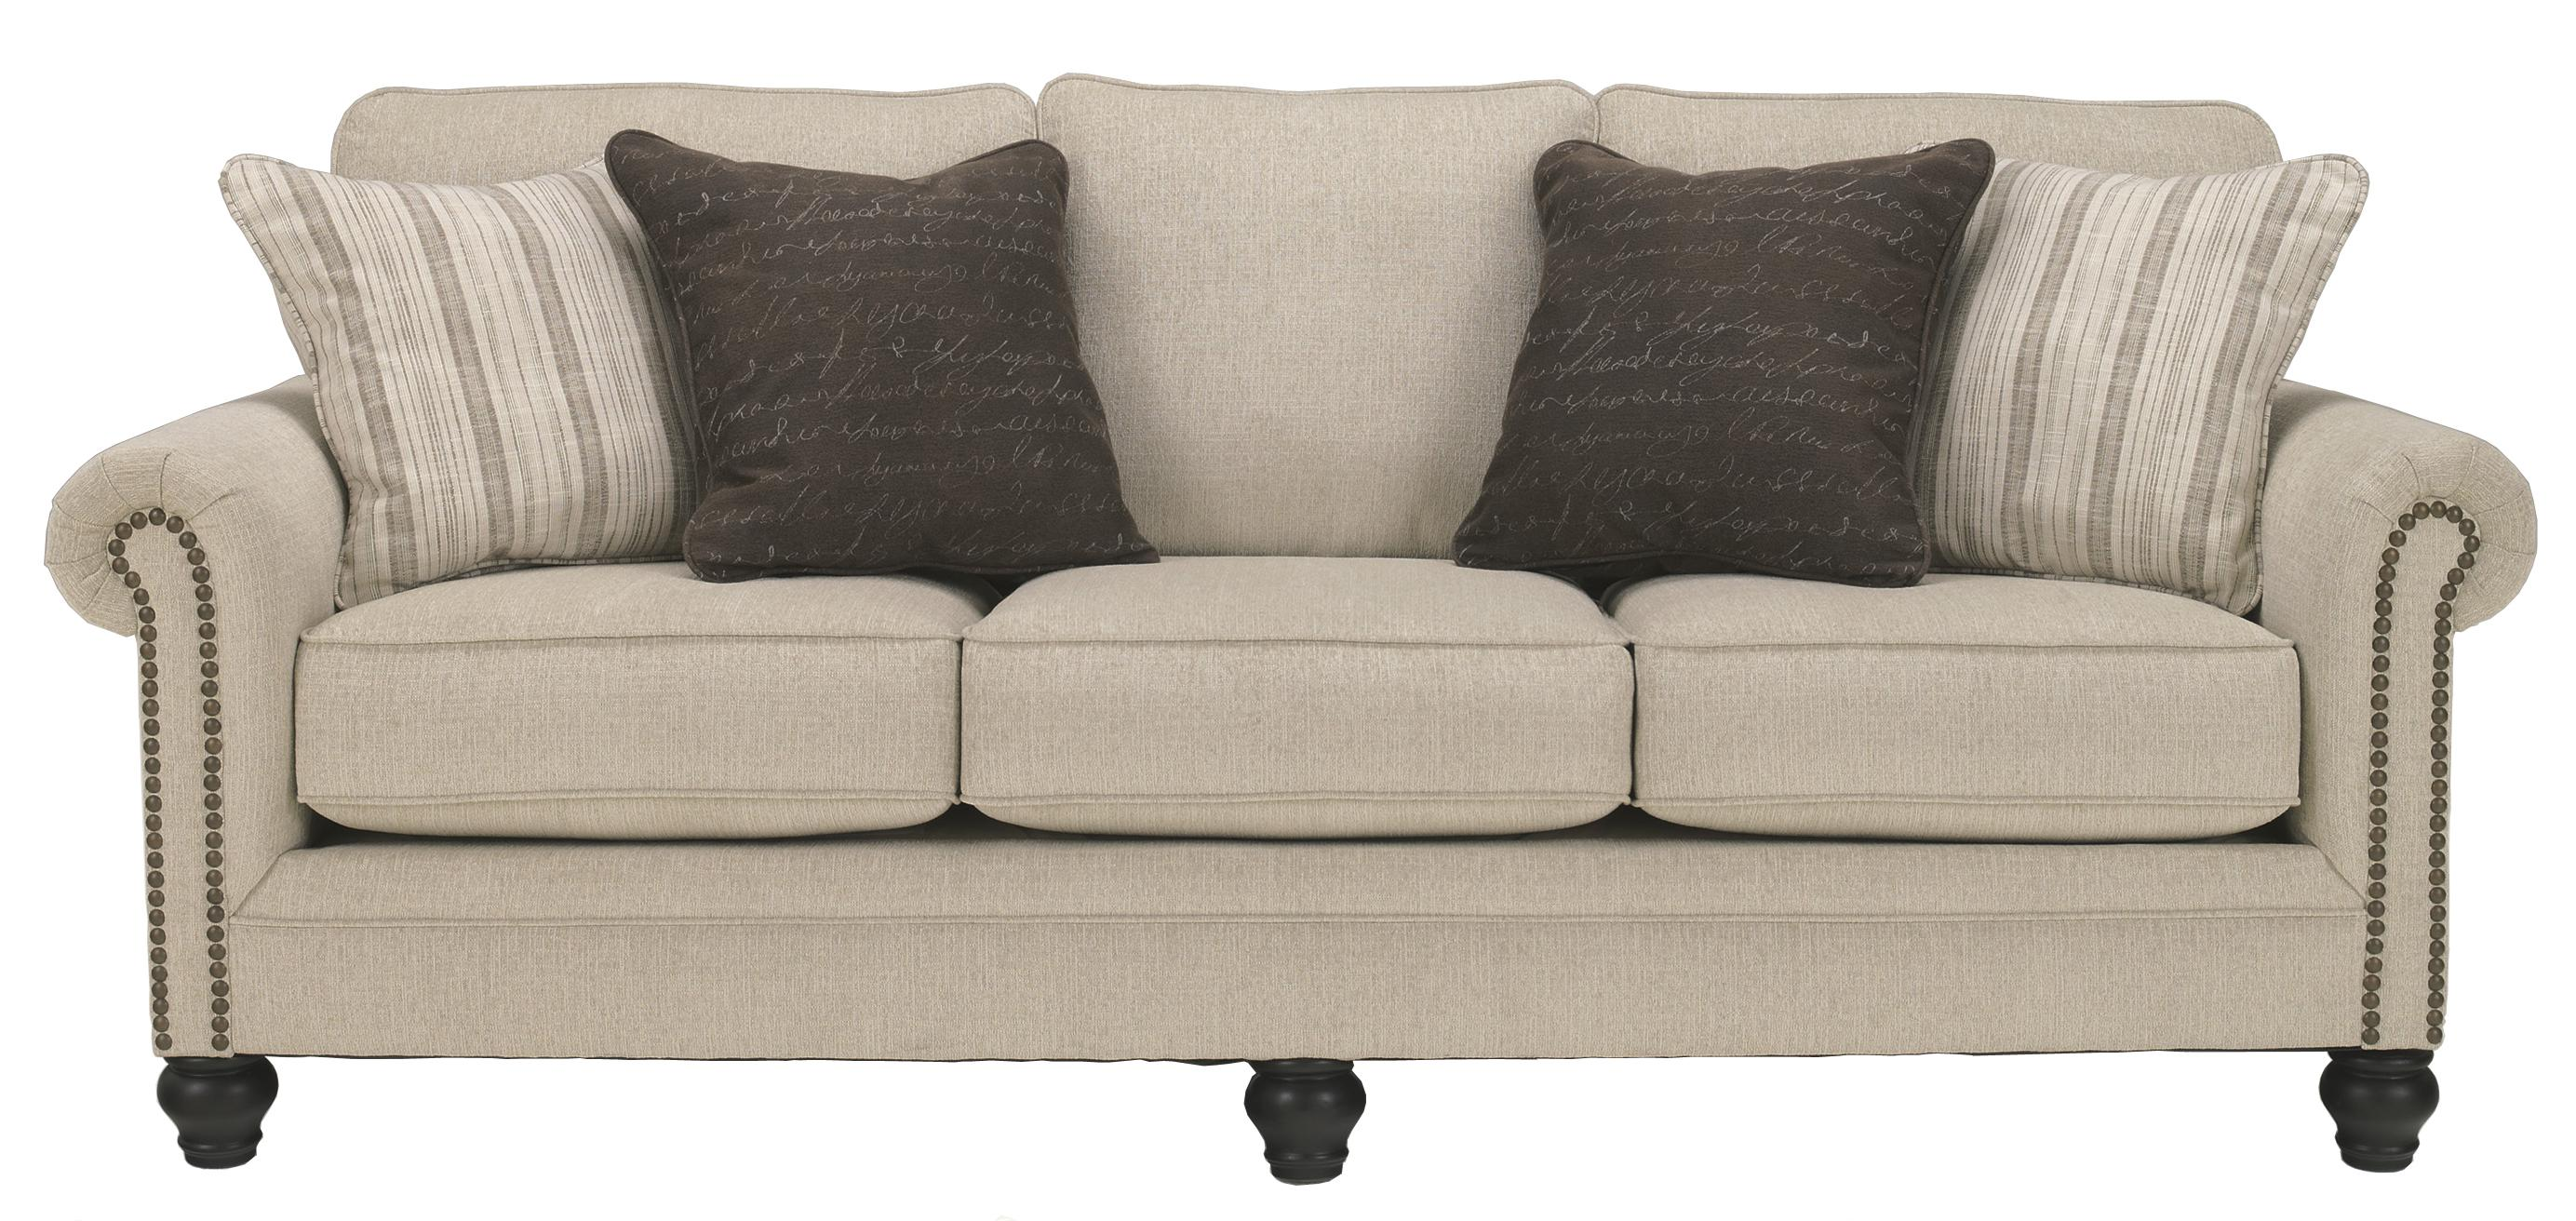 Transitional Sofa With Rolled Arms With Nail Head Trim By  ~ What Is A Transitional Sofa